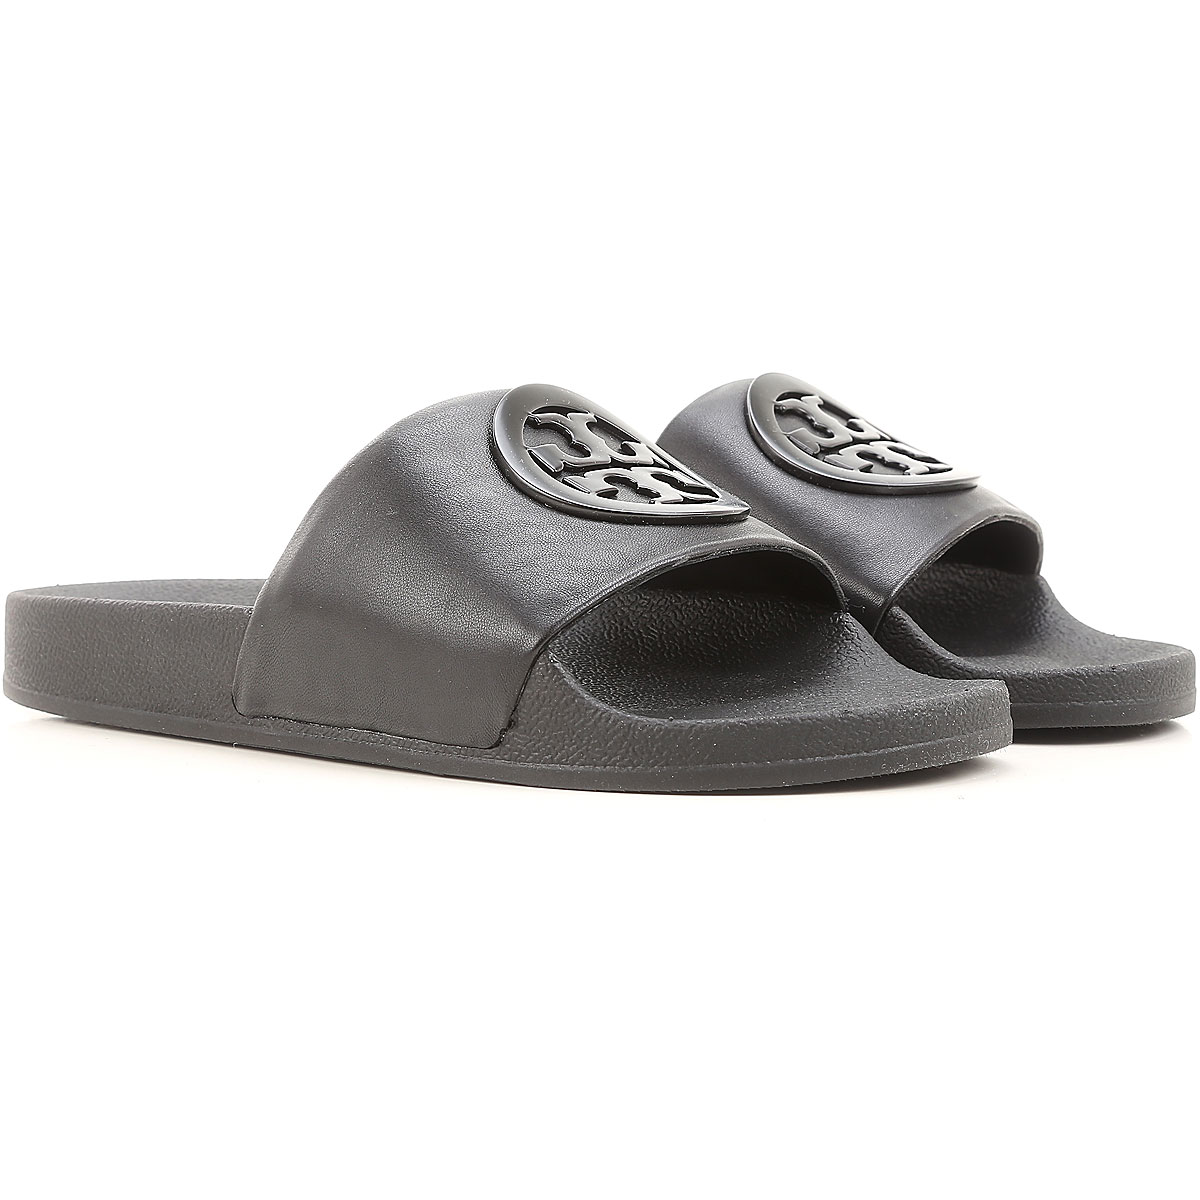 Tory Burch Sandals for Women, Black, Leather, 2017, 10 5 6 7 8 9 USA-437964